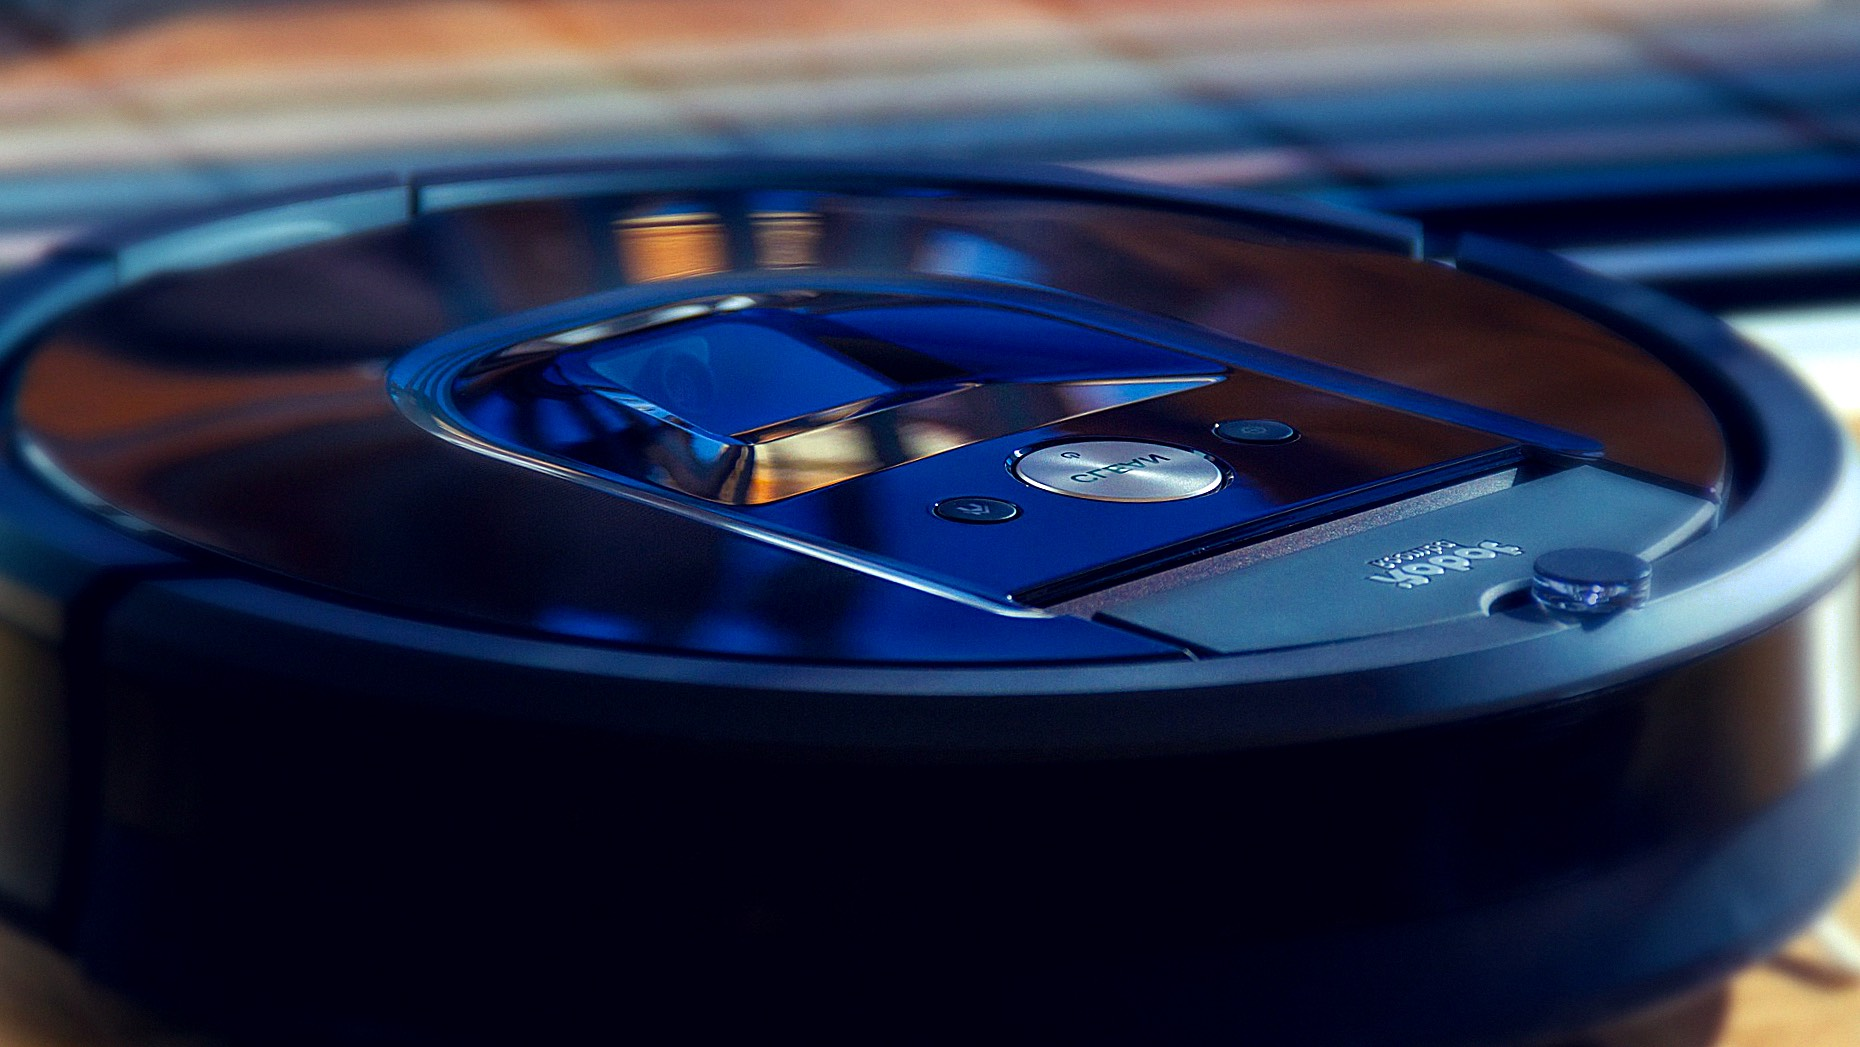 The Best Robot Vacuums for 2020